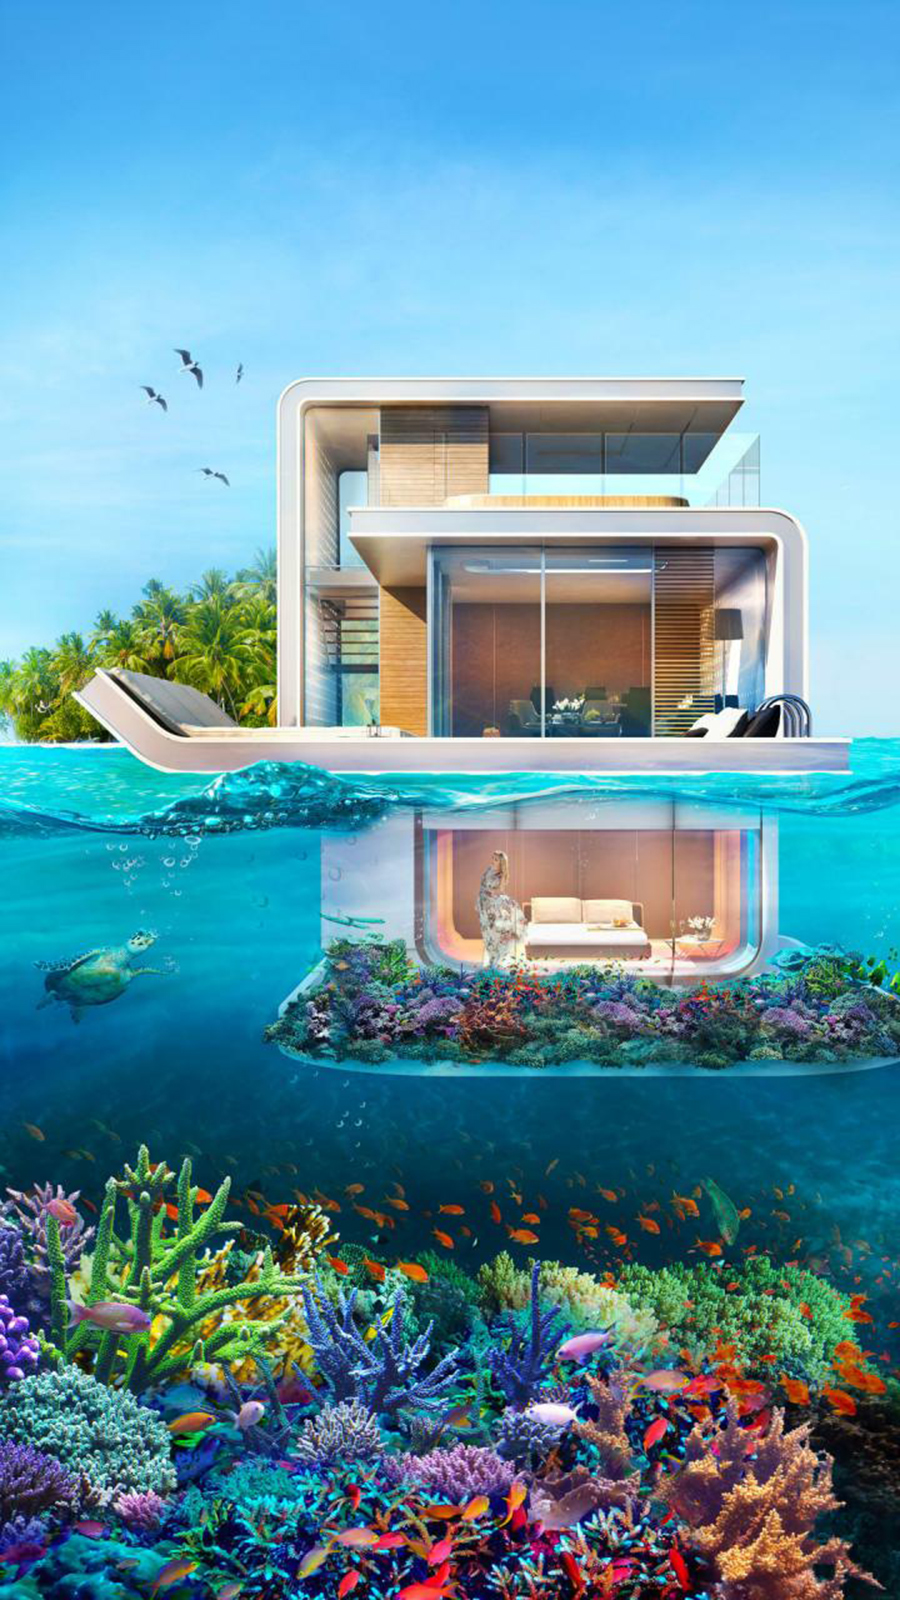 Luxury, Design, Villa, Triplex House Wallpapers Free Download